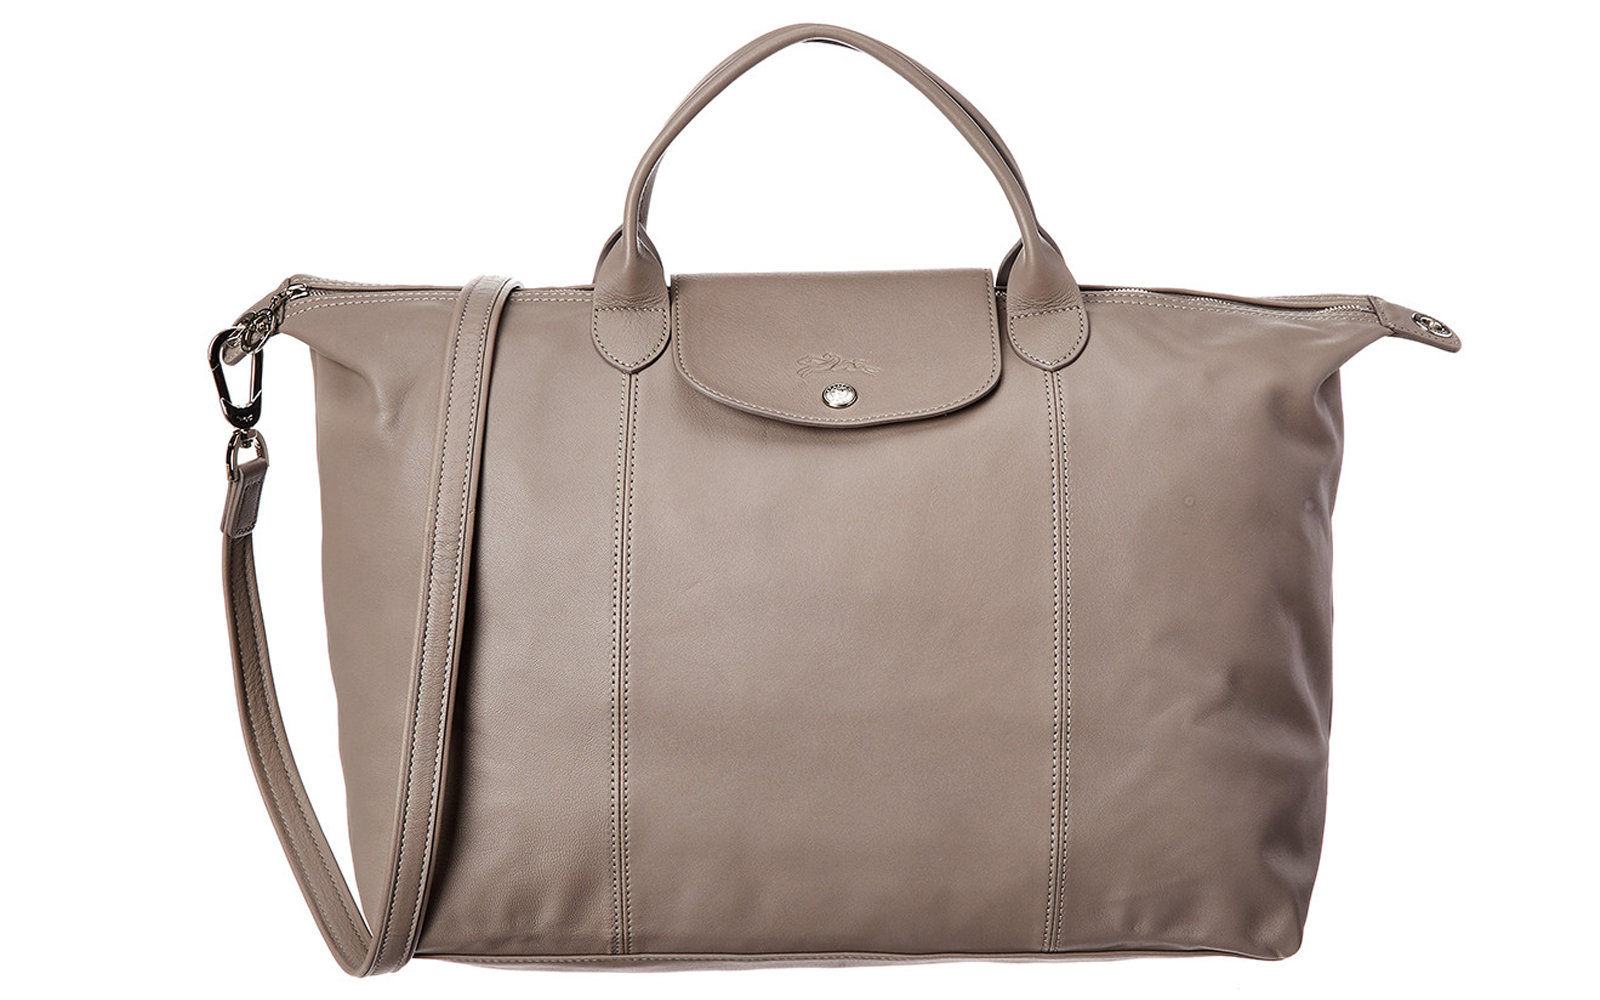 Longchamp Le Pliage Cuir Large Leather Short Handle Tote in Pebble